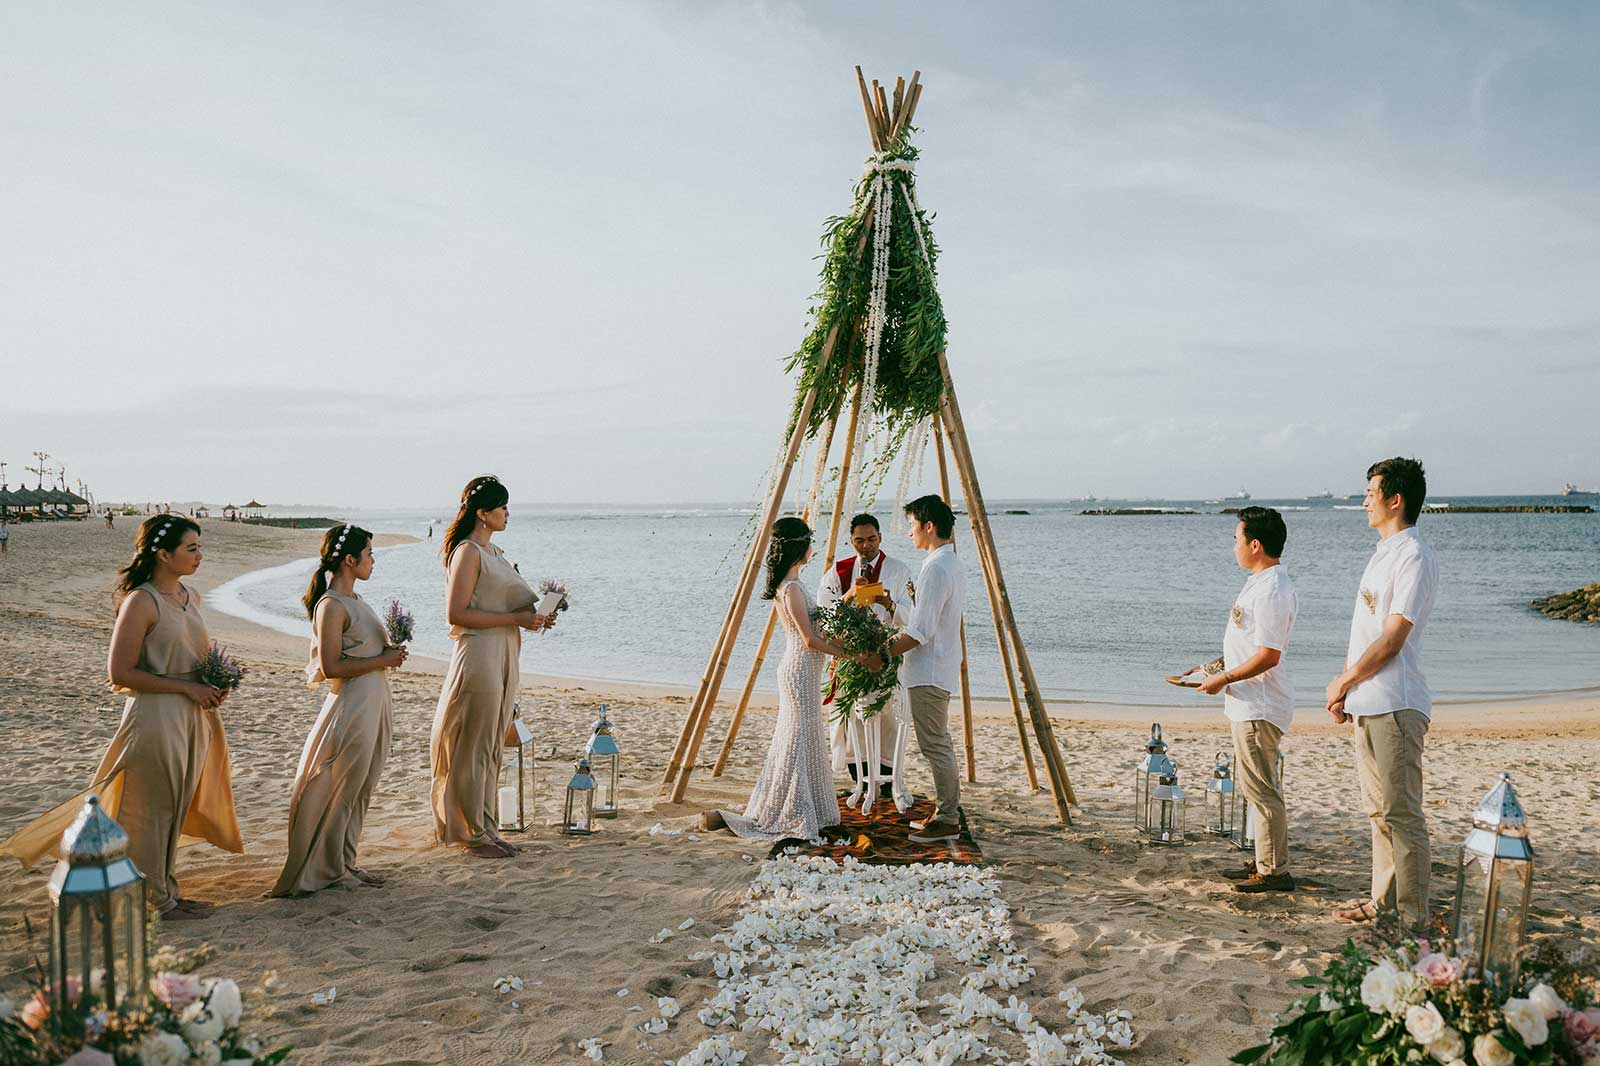 Bali Nusa Dua Destination wedding location